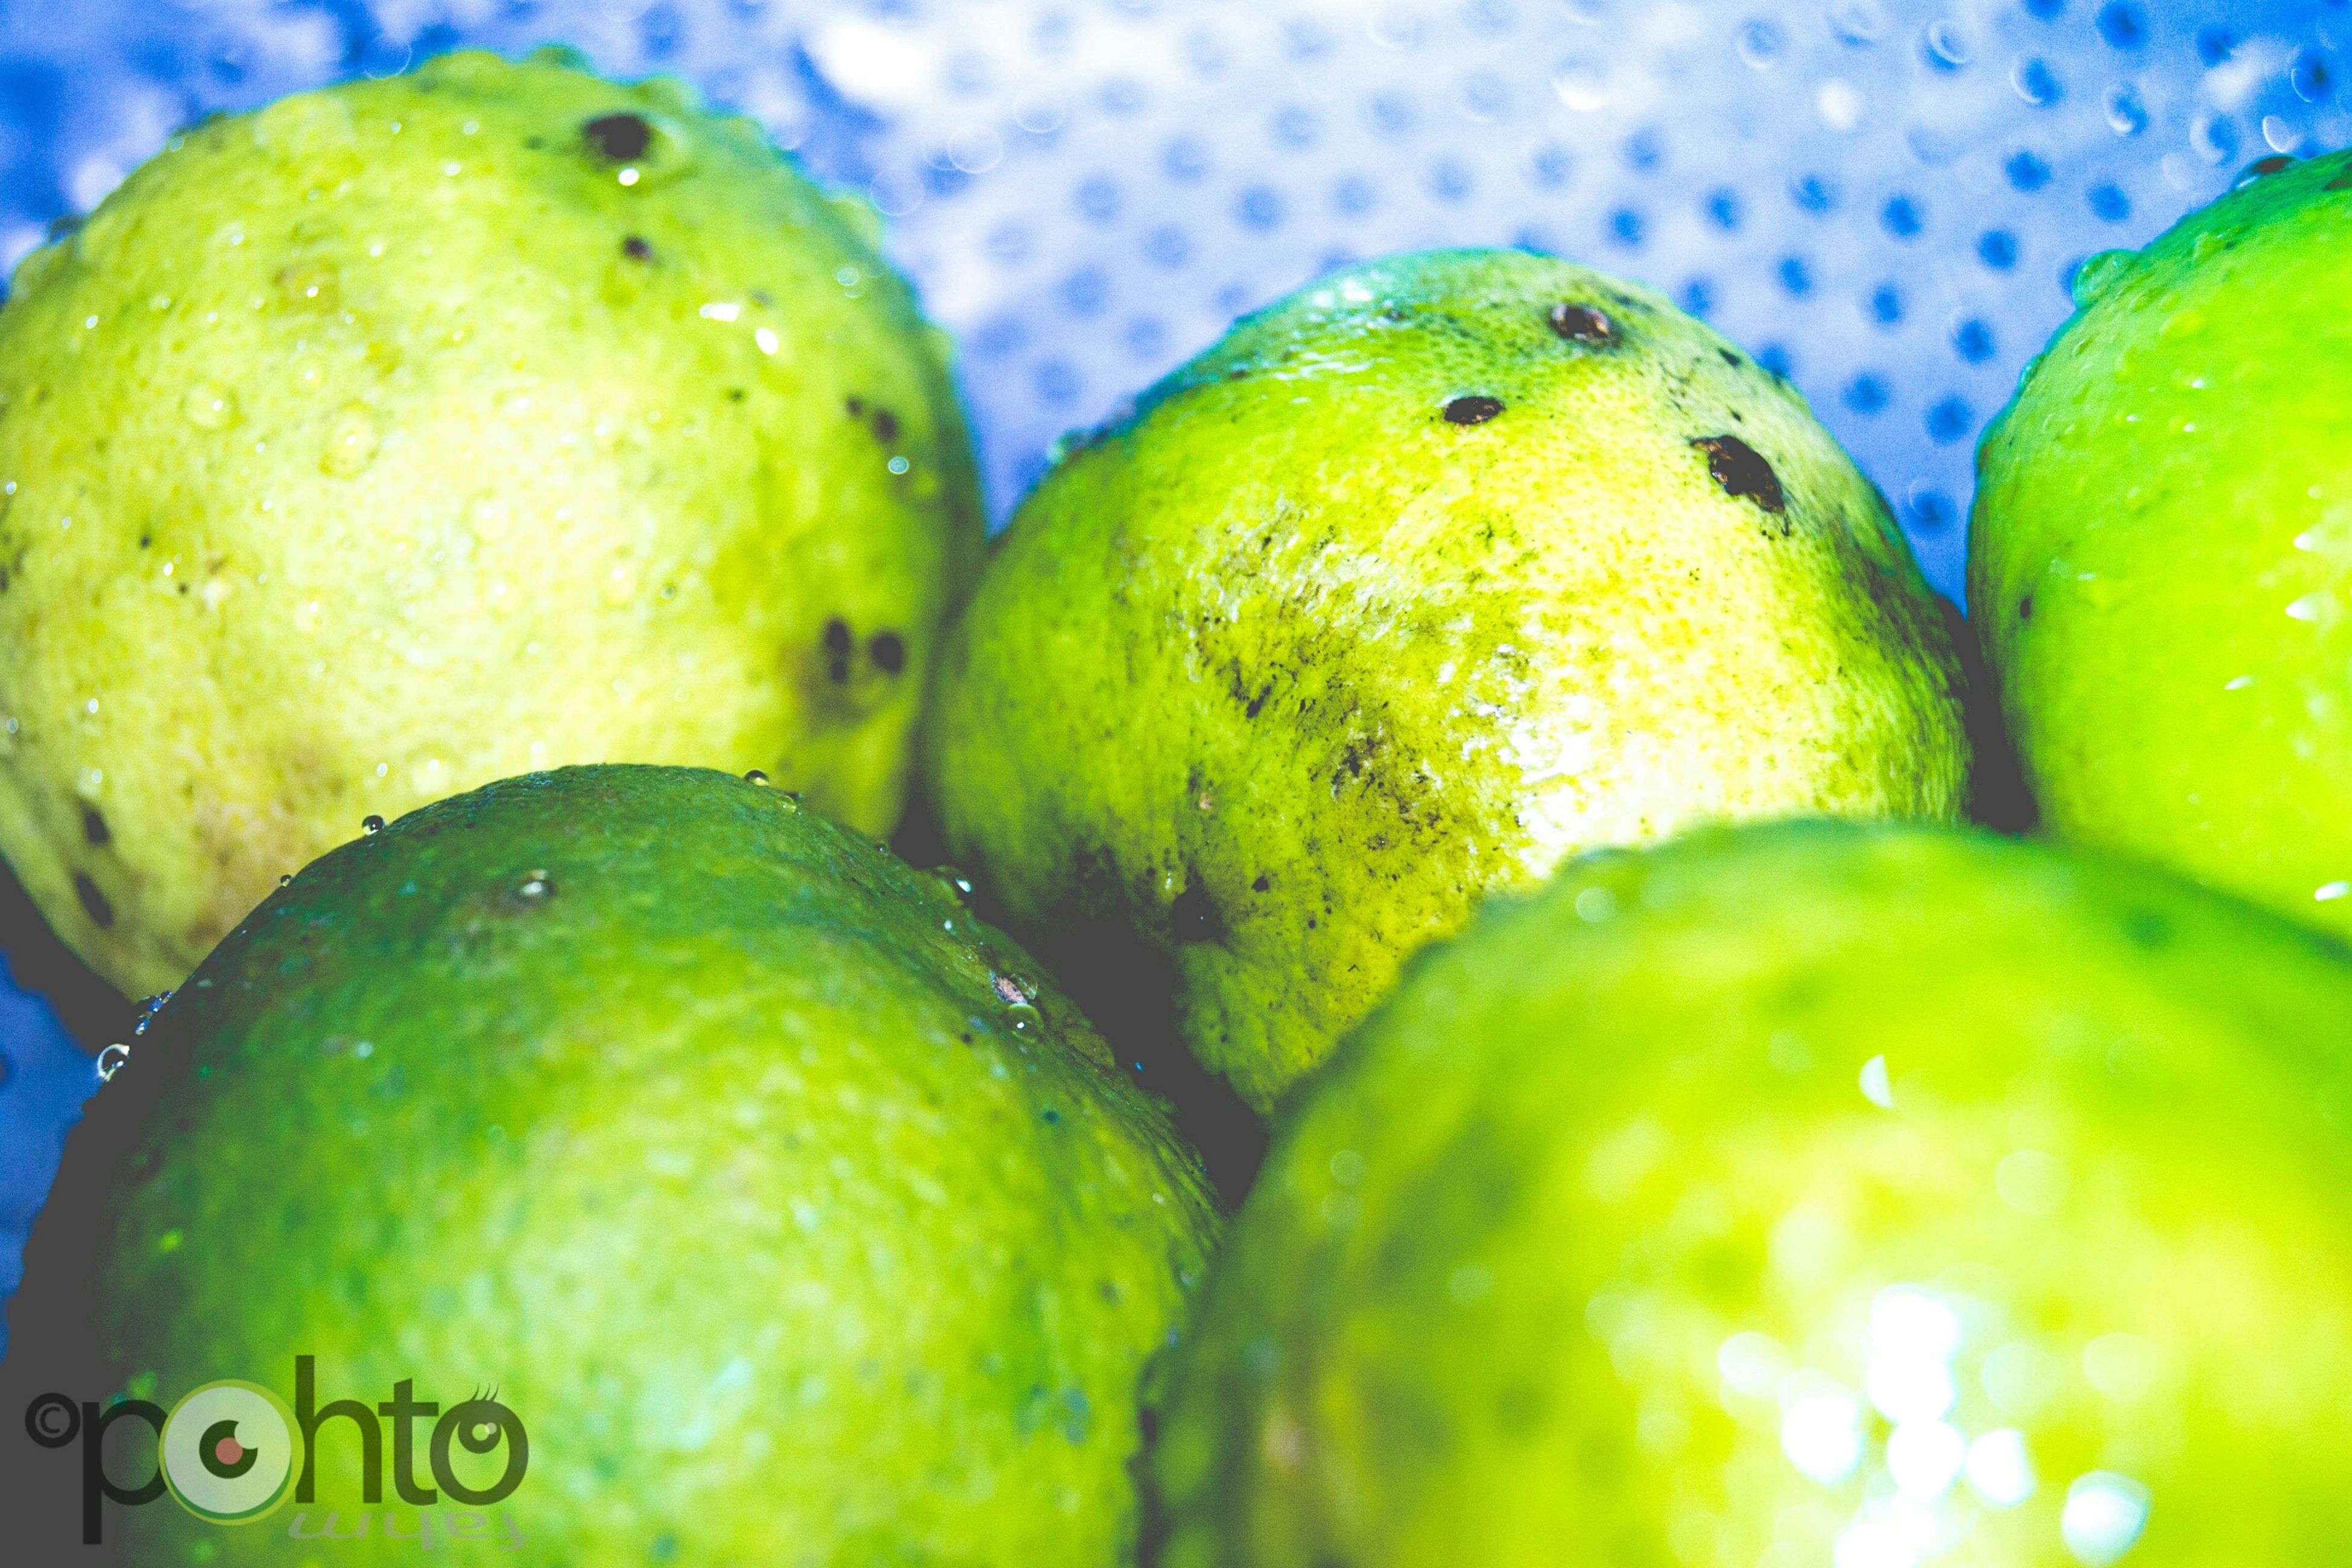 food and drink, food, healthy eating, fruit, green color, freshness, close-up, organic, still life, indoors, citrus fruit, apple, ripe, lemon, juicy, lime, vegetable, apple - fruit, green, healthy lifestyle